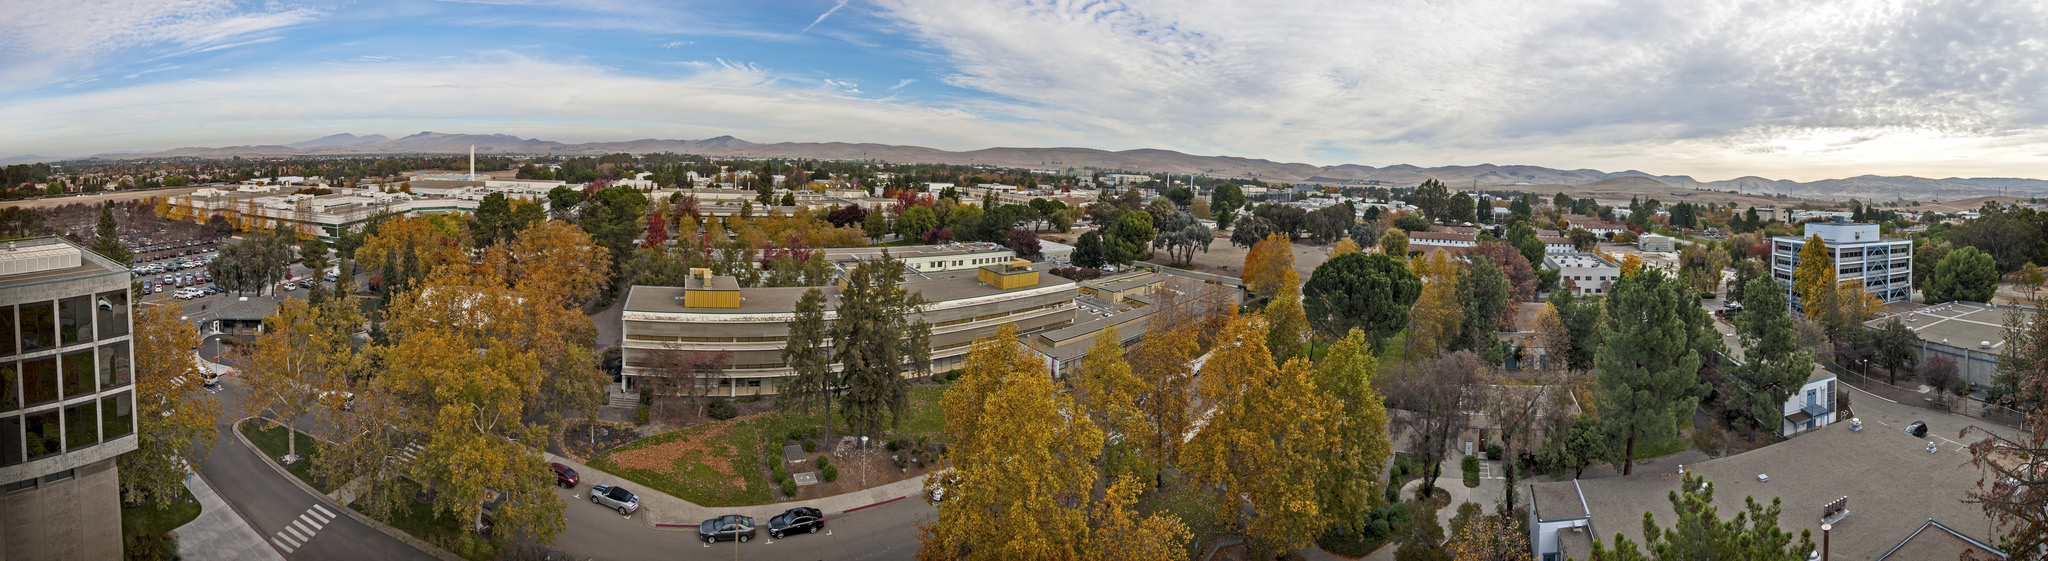 Aerial view of LLNL